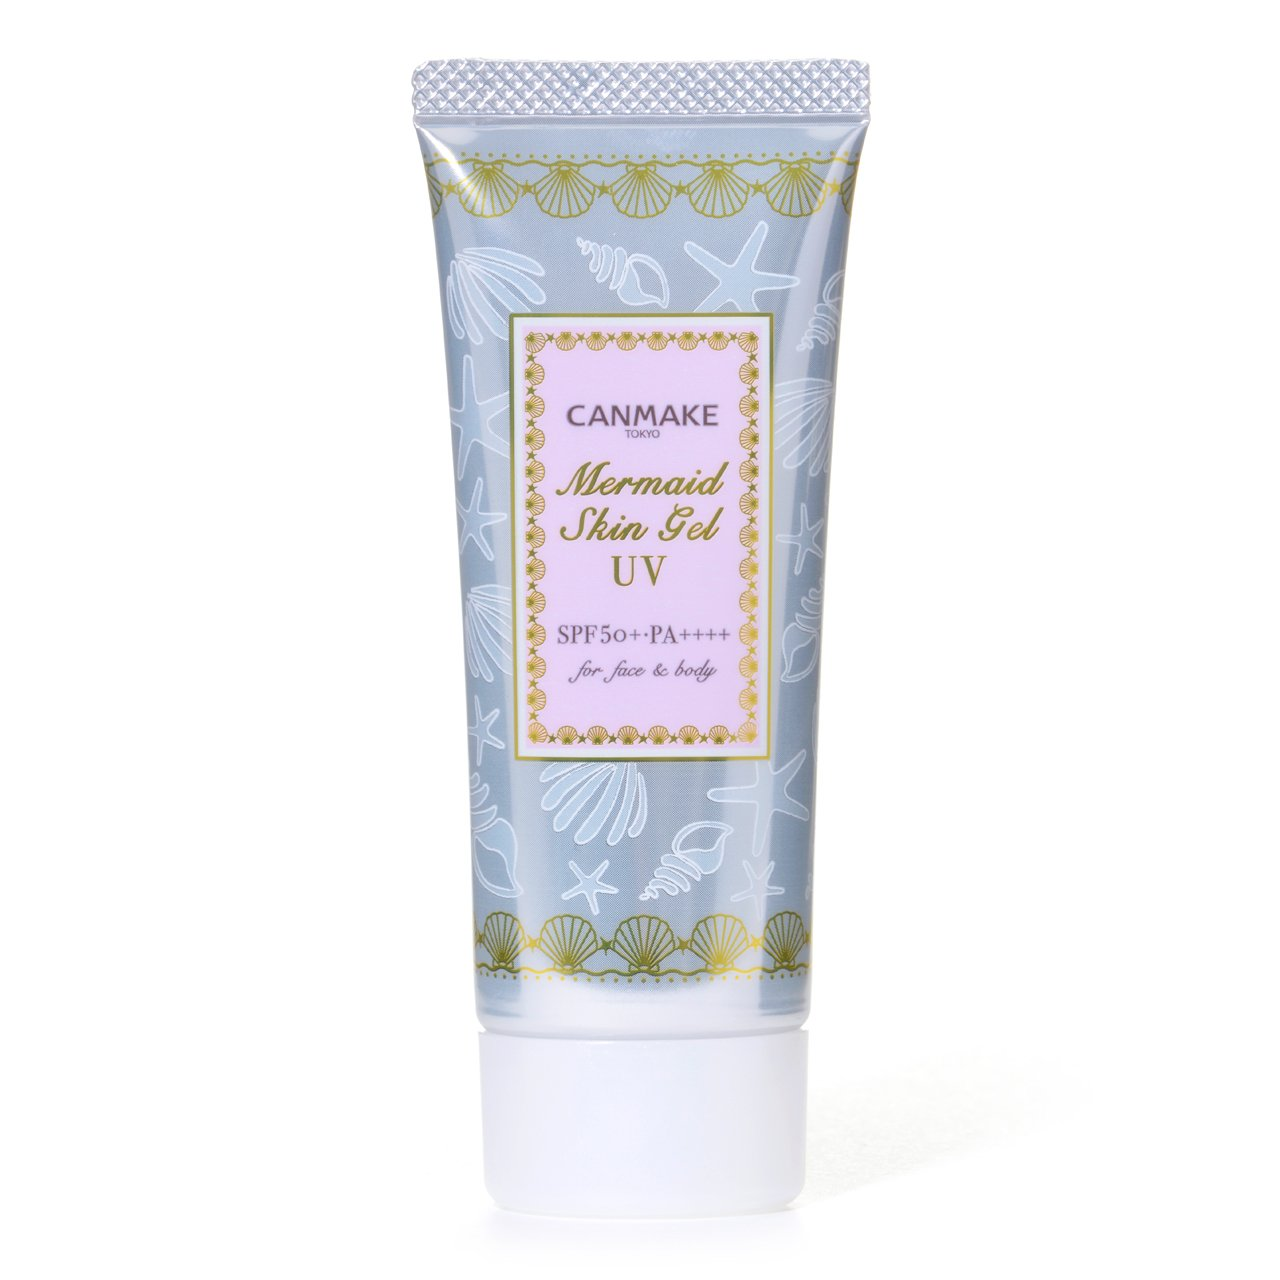 Canmake Mermaid Skin Gel UV Moisturizing Sunscreen SPF50 PA++++ 40g